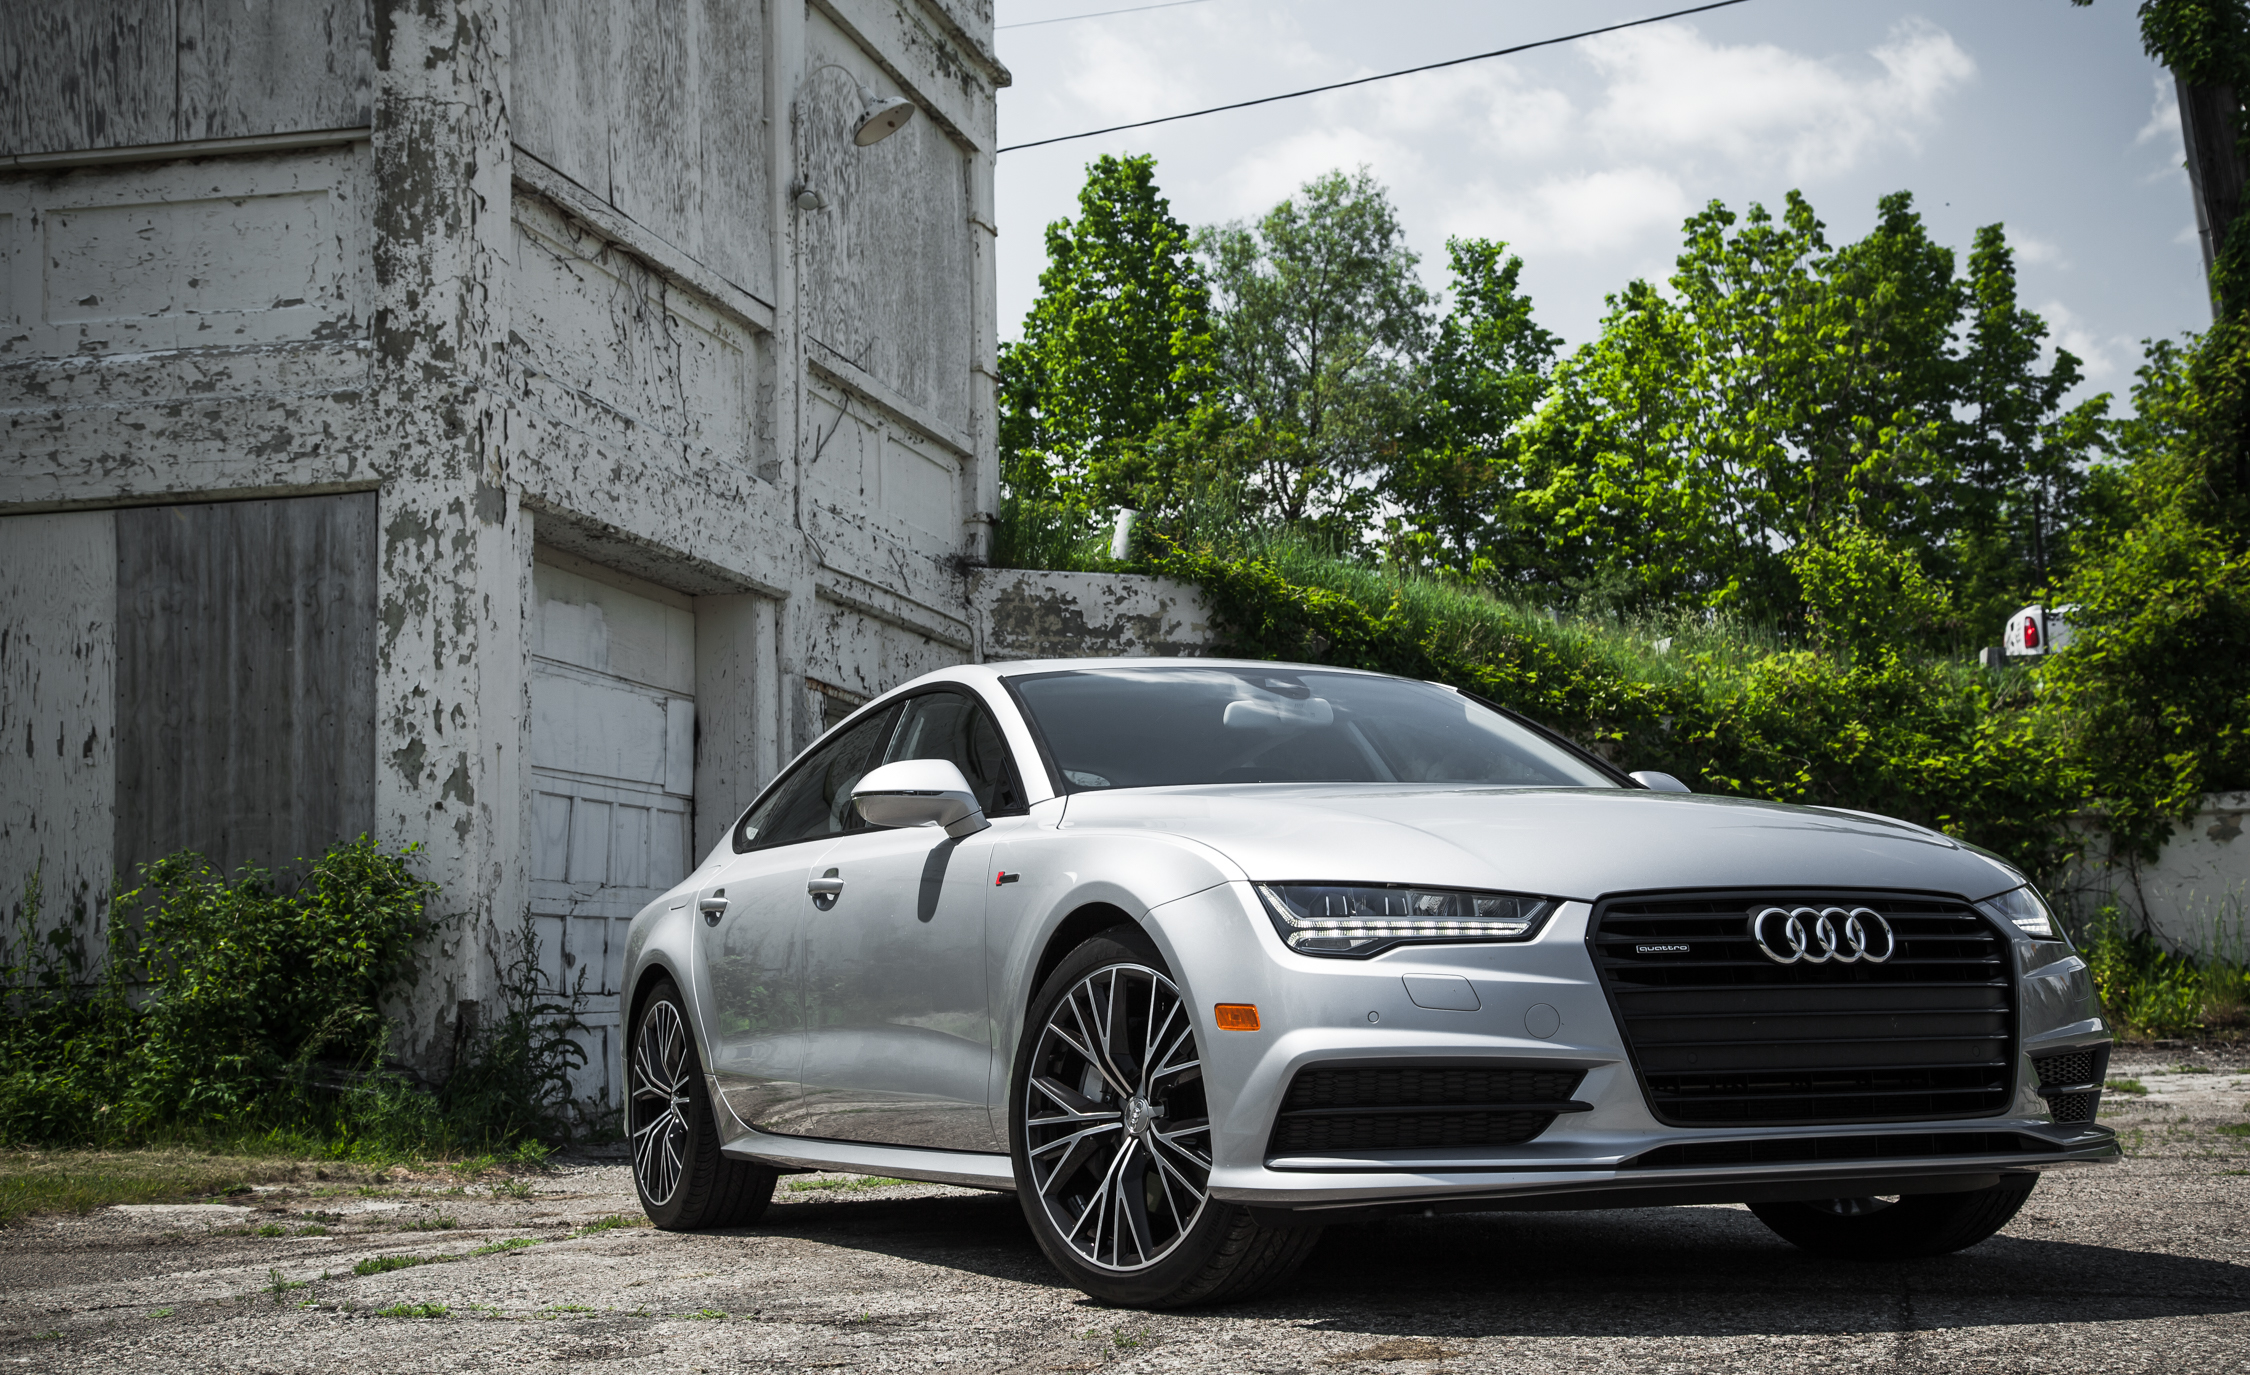 2016 Audi A7 Exterior (Photo 2 of 26)